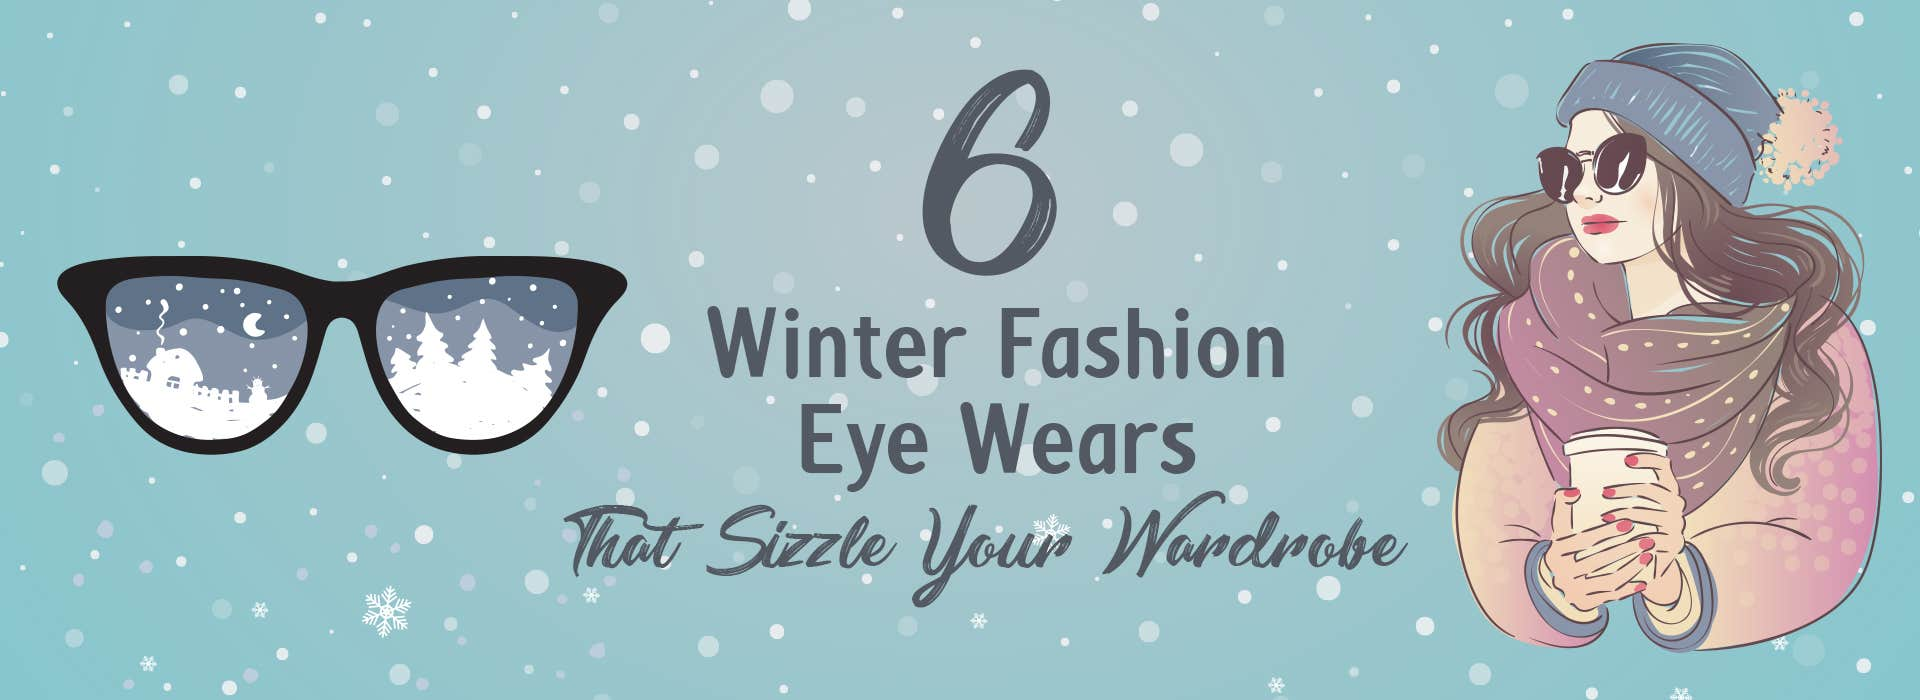 6 Winter Fashion Eye Wears That Sizzle Your Wardrobe